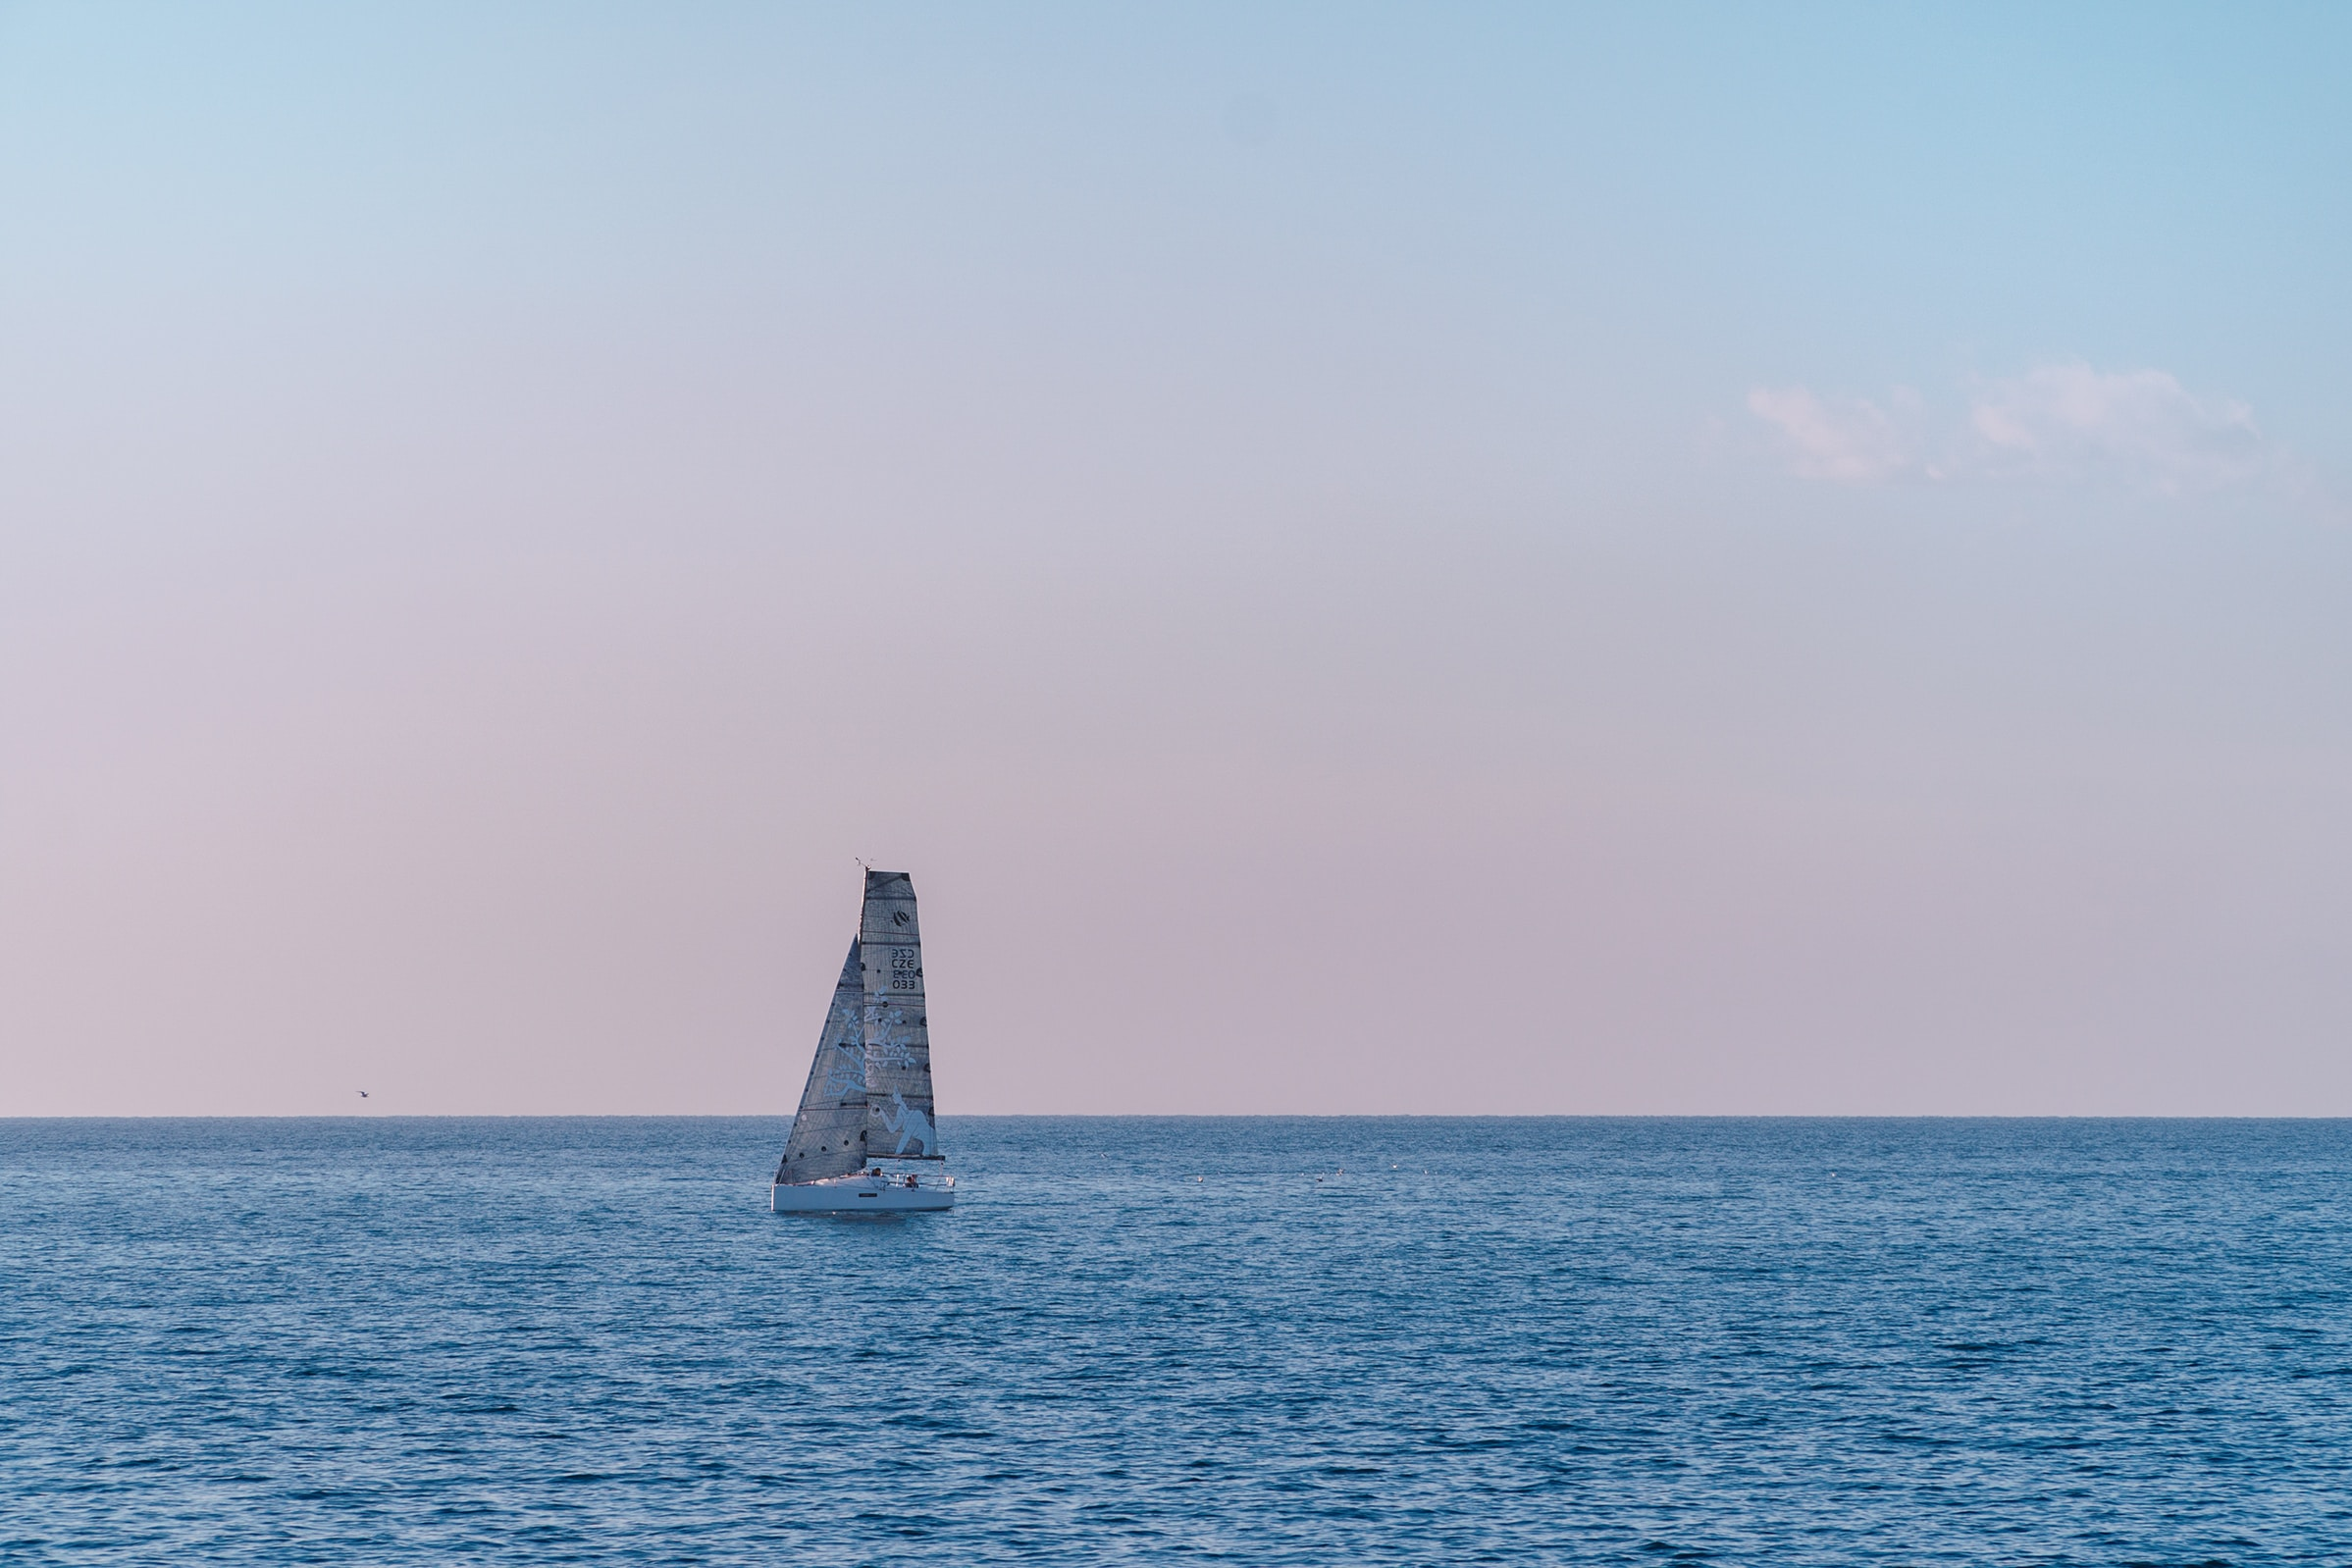 Sailboat at Sunset in Open Ocean